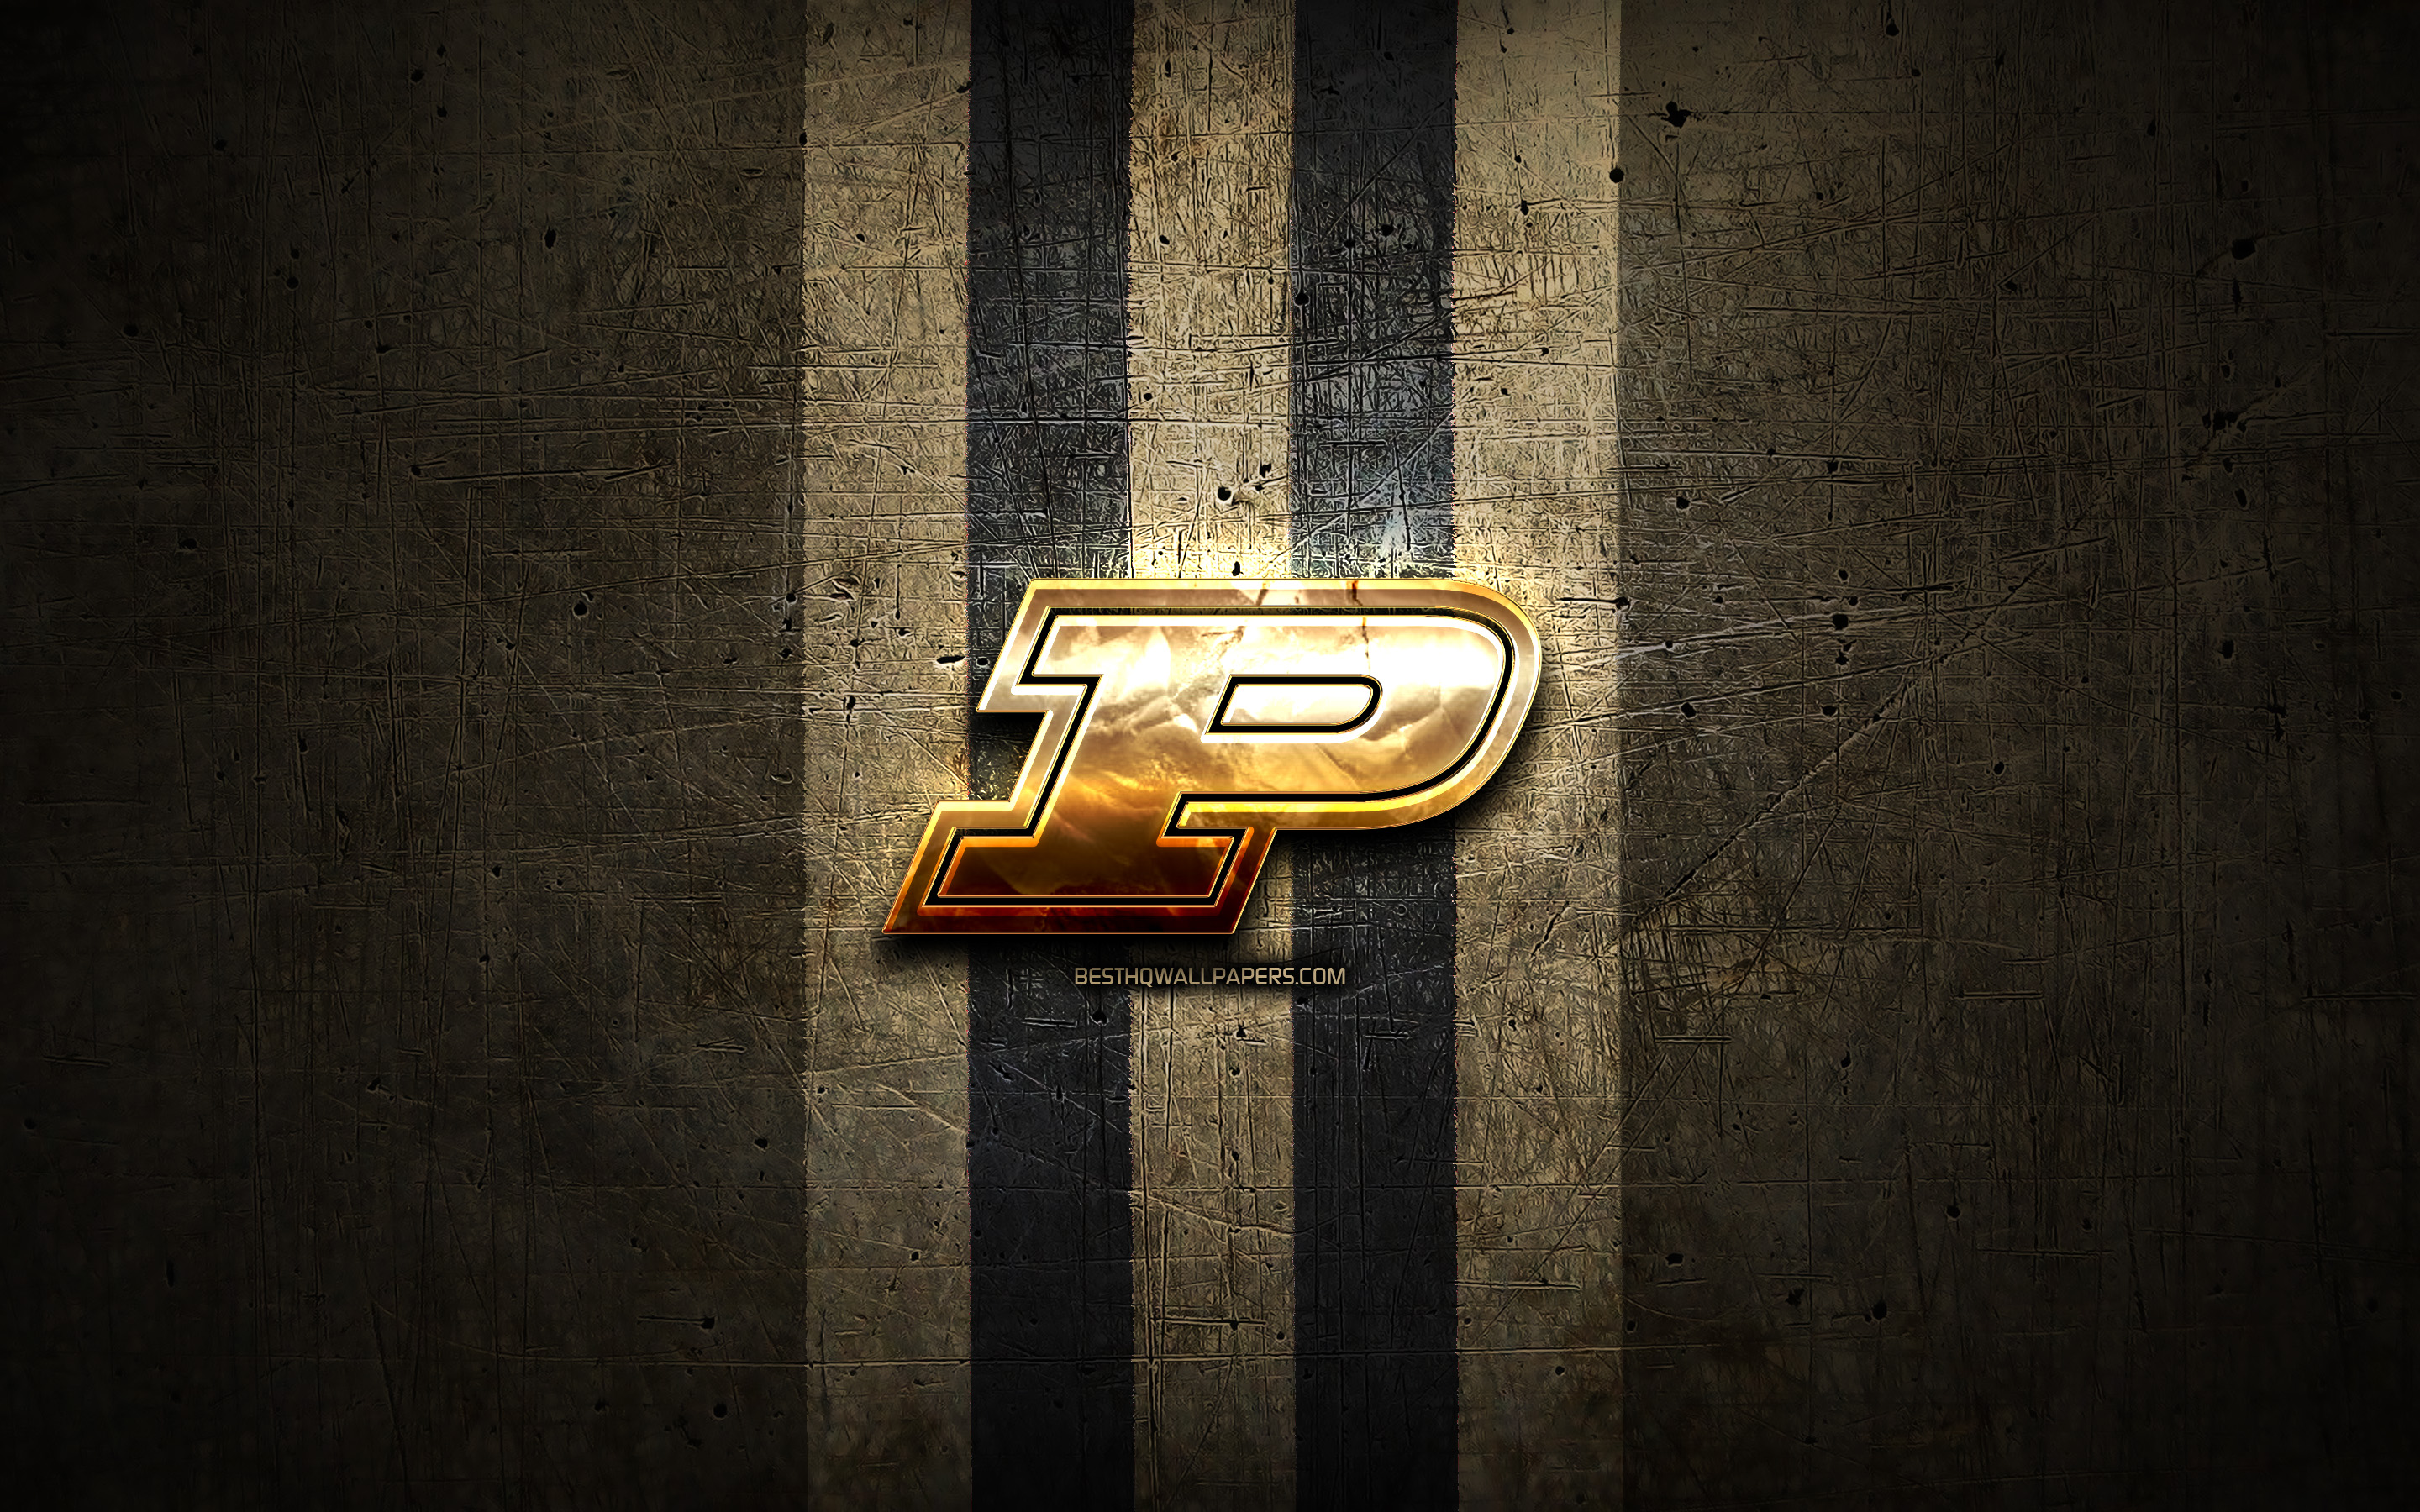 Download wallpapers Purdue Boilermakers golden logo NCAA brown 2880x1800